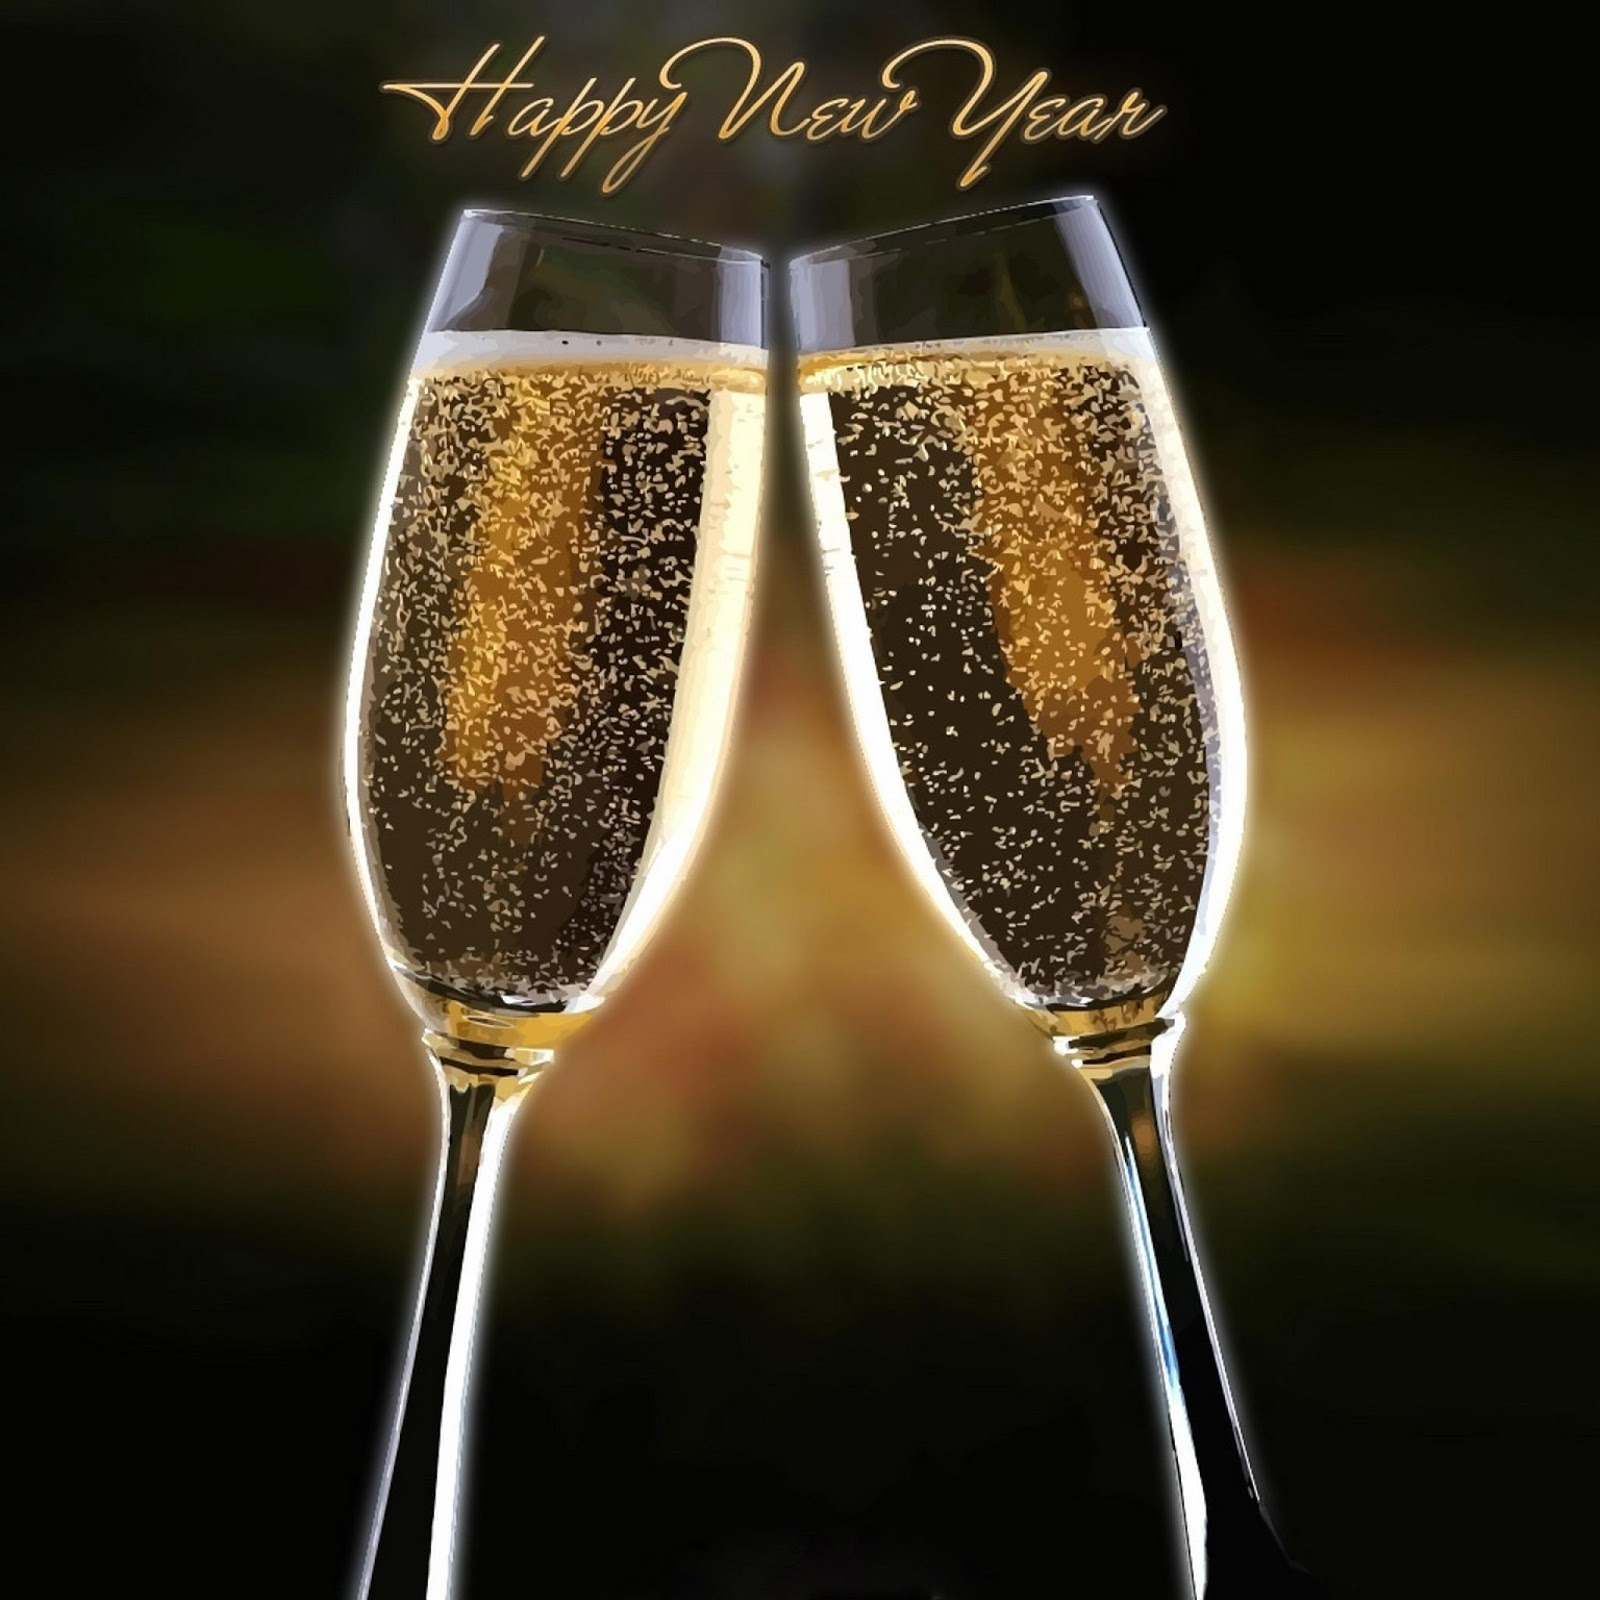 free new year 2013 ipad wallpaper 14